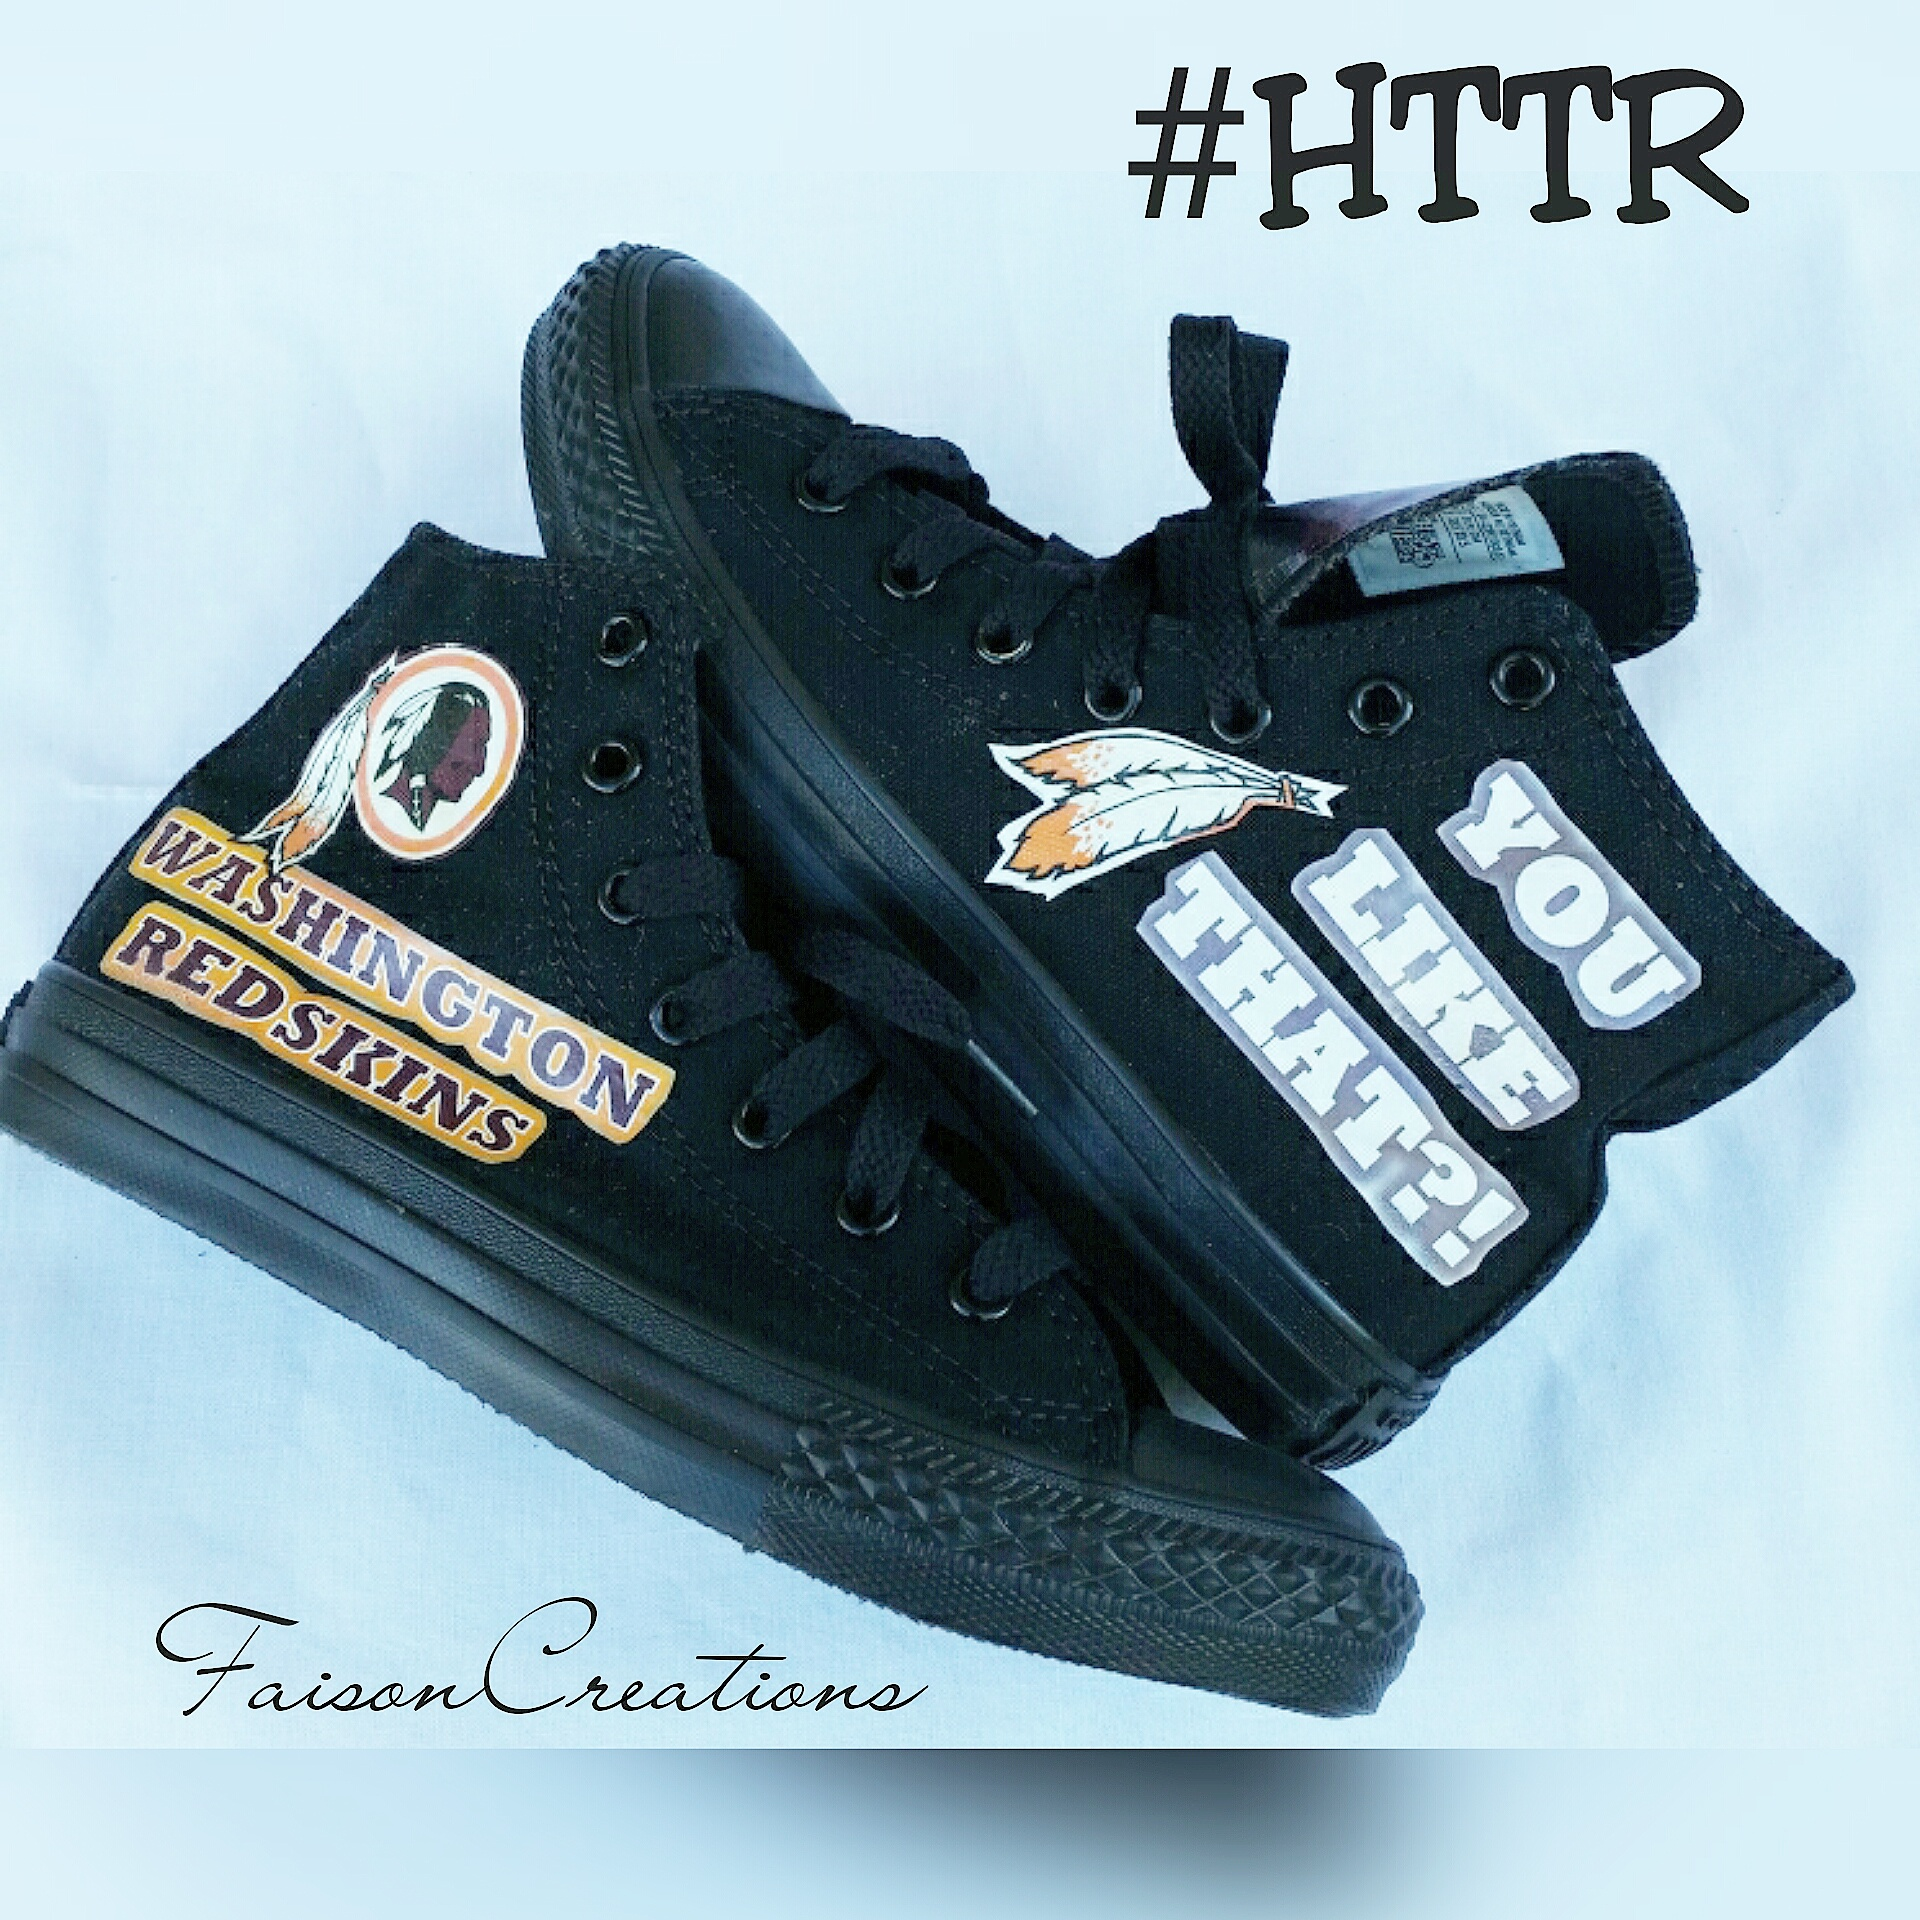 b0e64ac2 Kids Custom Redskins Converse Size 2 from FaisonCreations